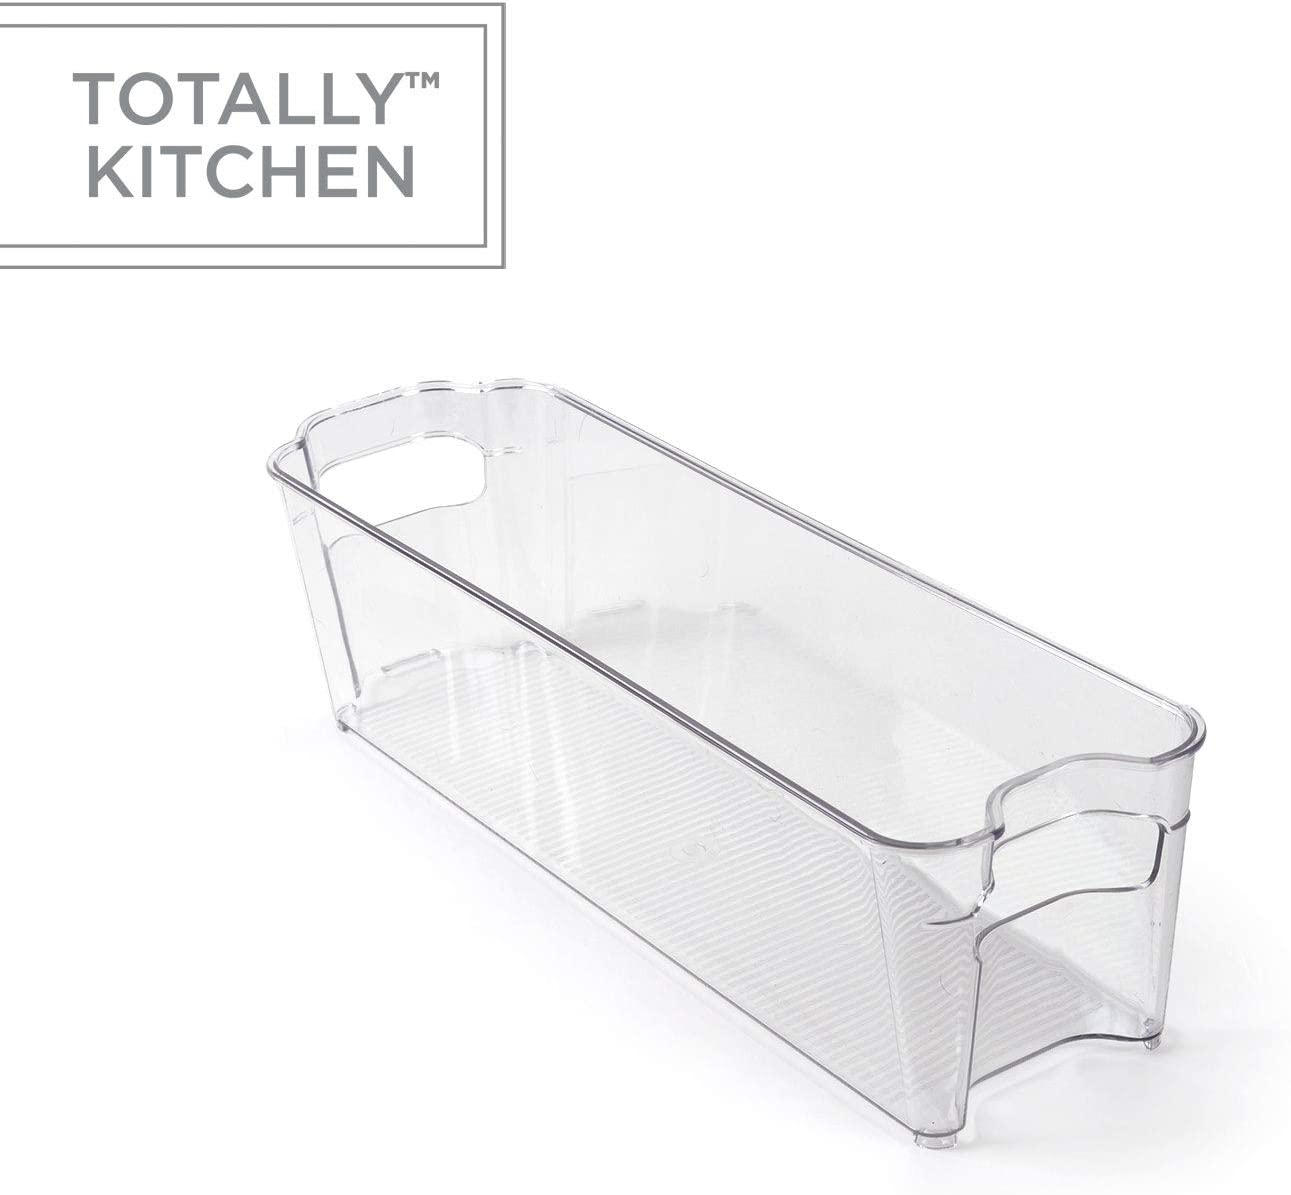 Totally Kitchen Clear Plastic Stackable Storage Bins   Refrigerator, Freezer, Pantry & Clothes Organization Container with Carrying Handles   Small